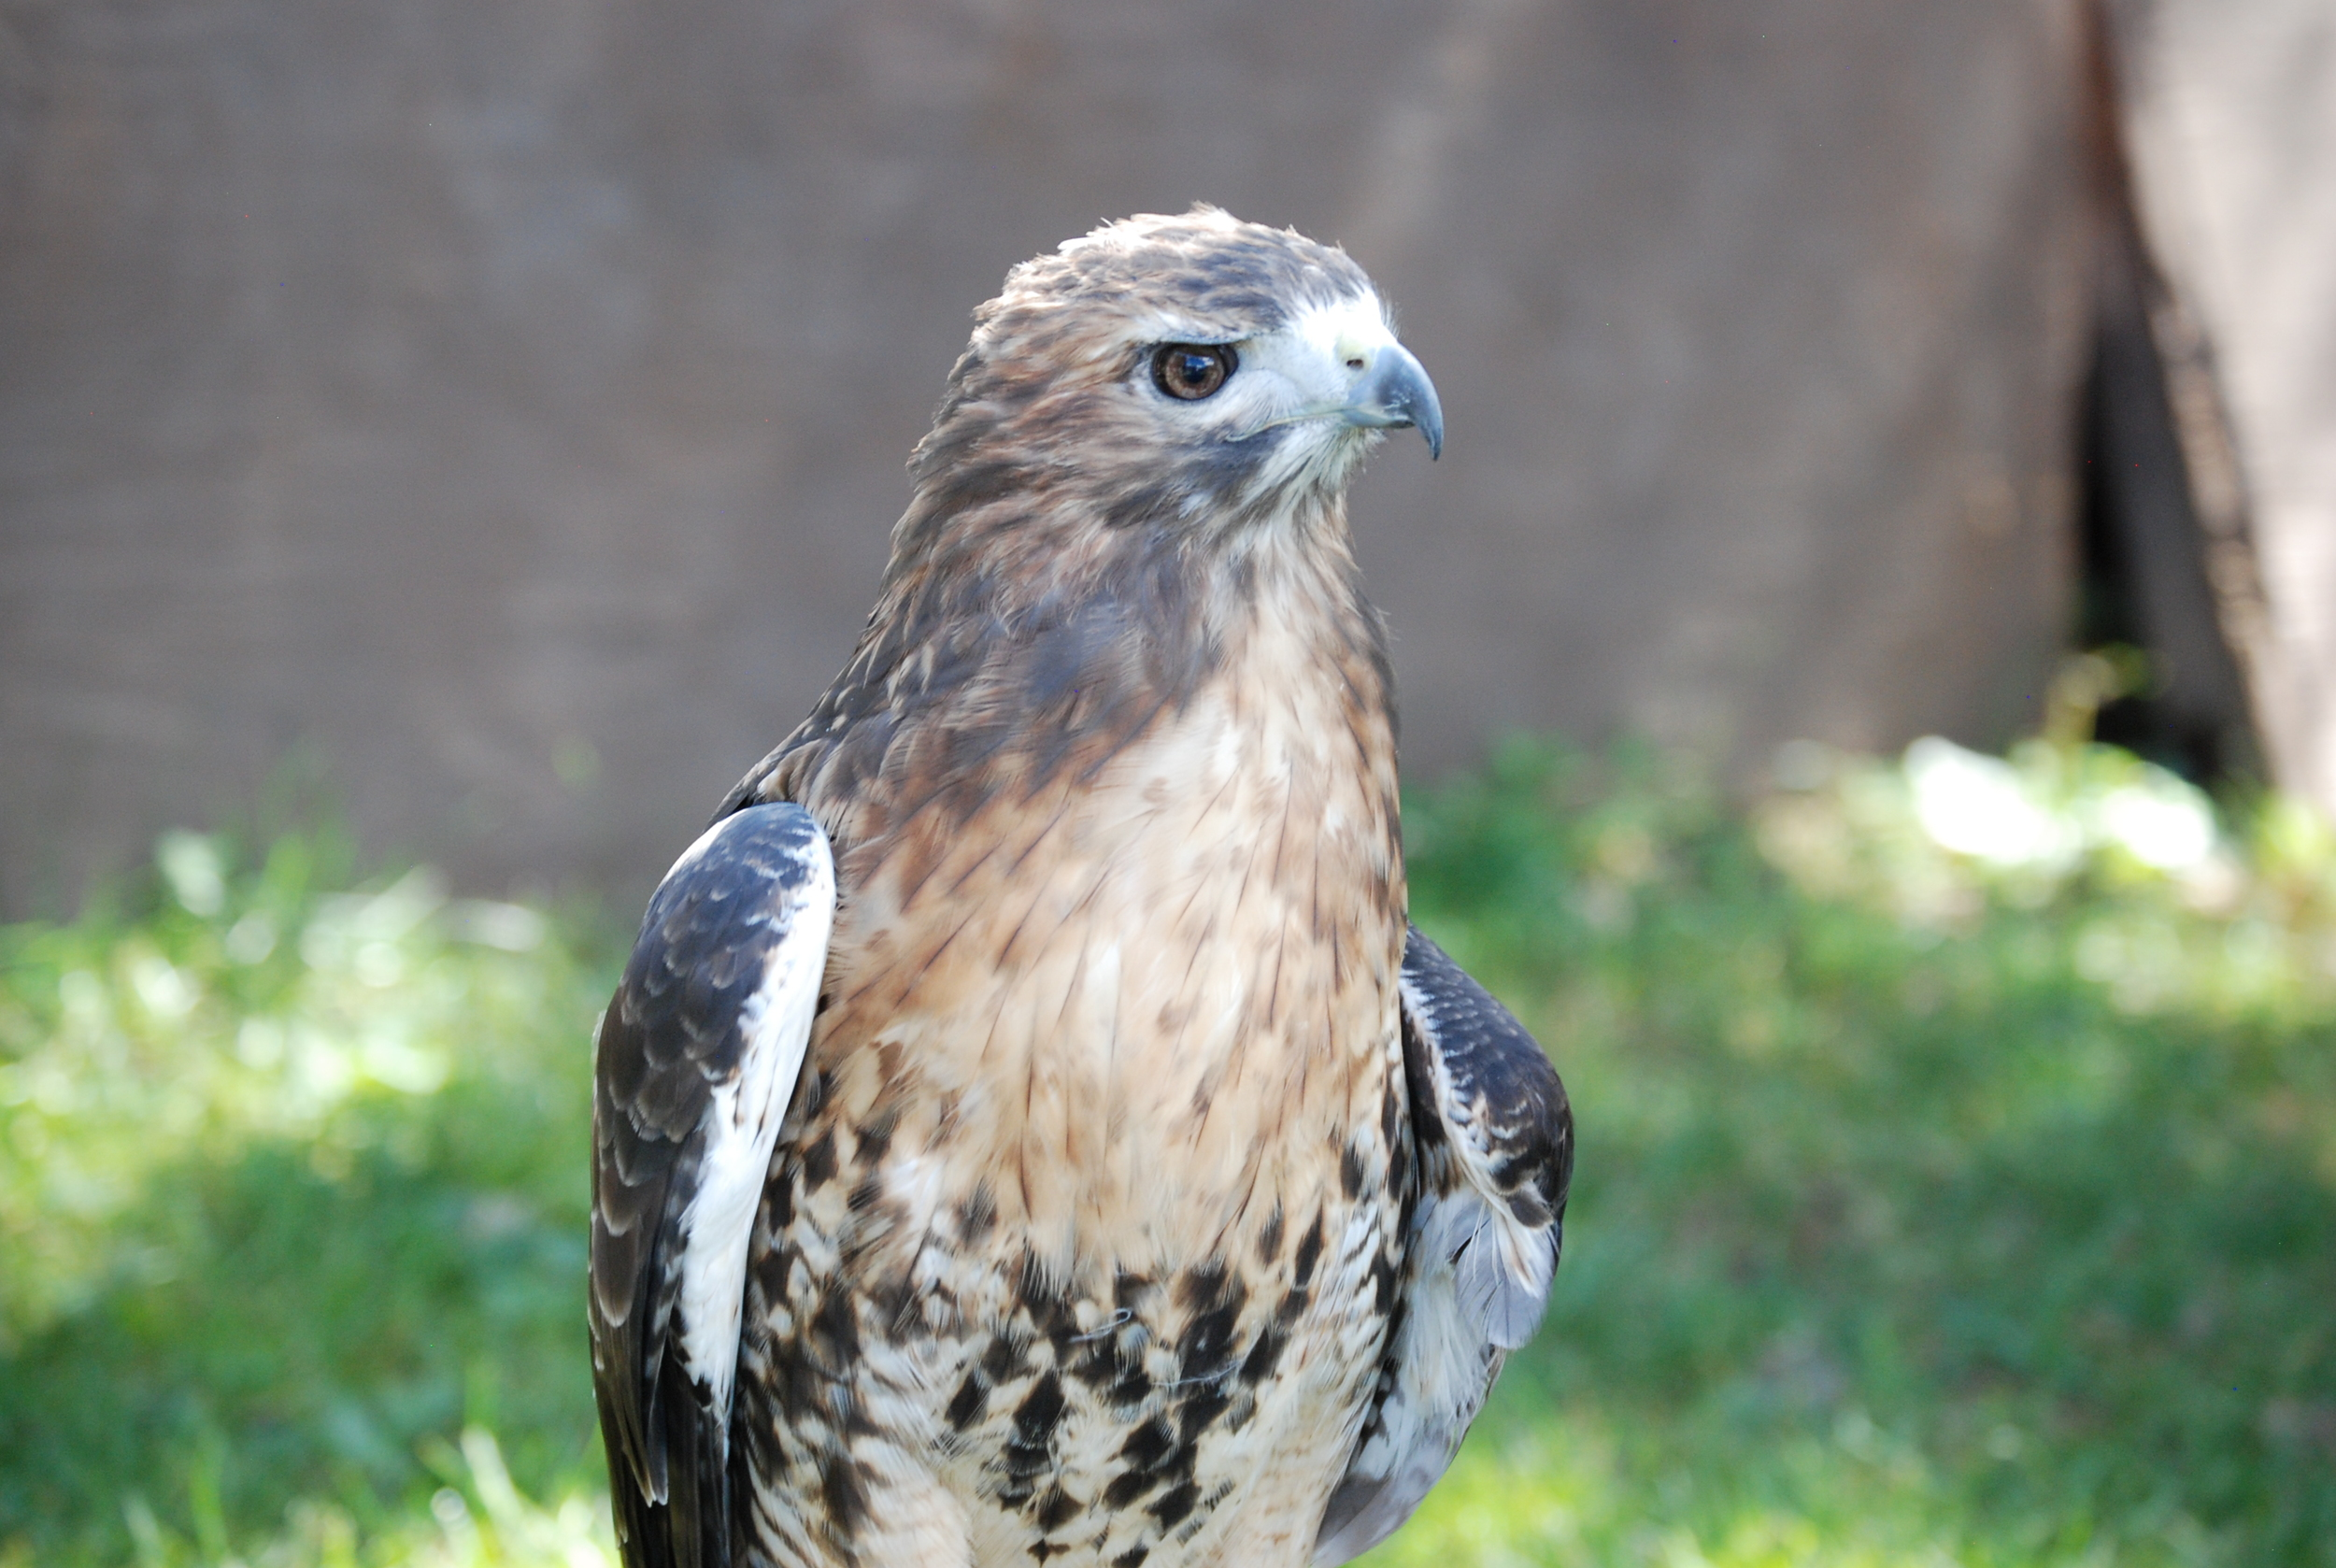 red-tailed-hawk-minnesota-wsc-3.JPG